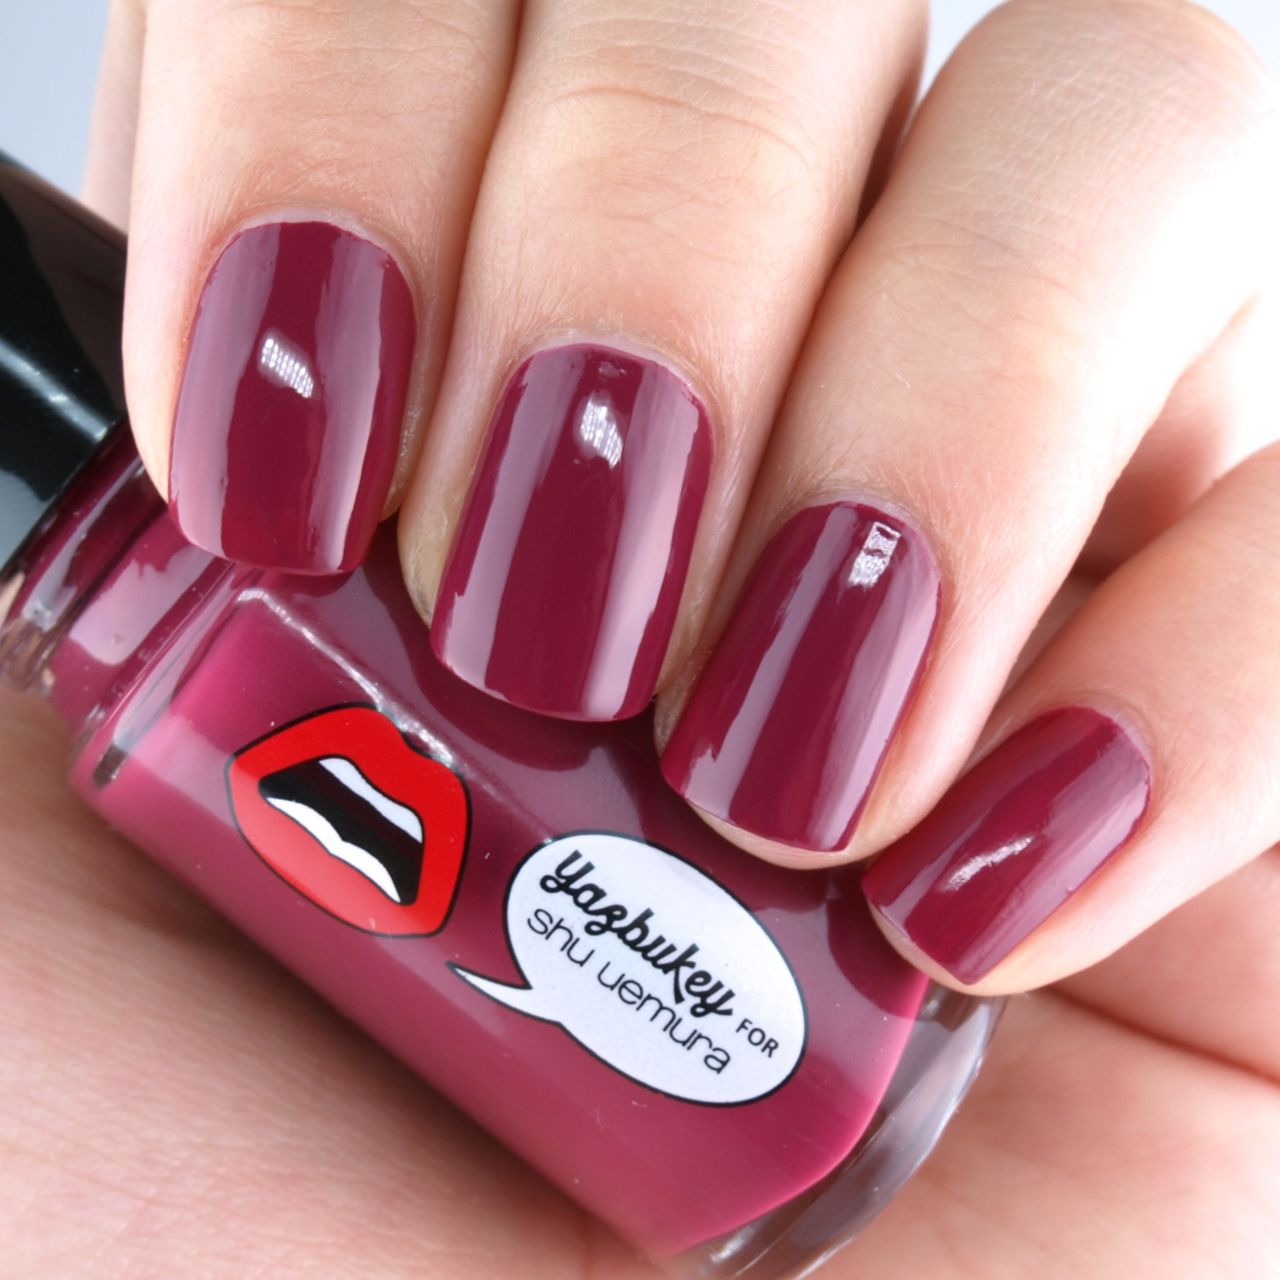 Yazbukey for Shu Uemura Summer 2015 Collection Nail Colors: Review ...